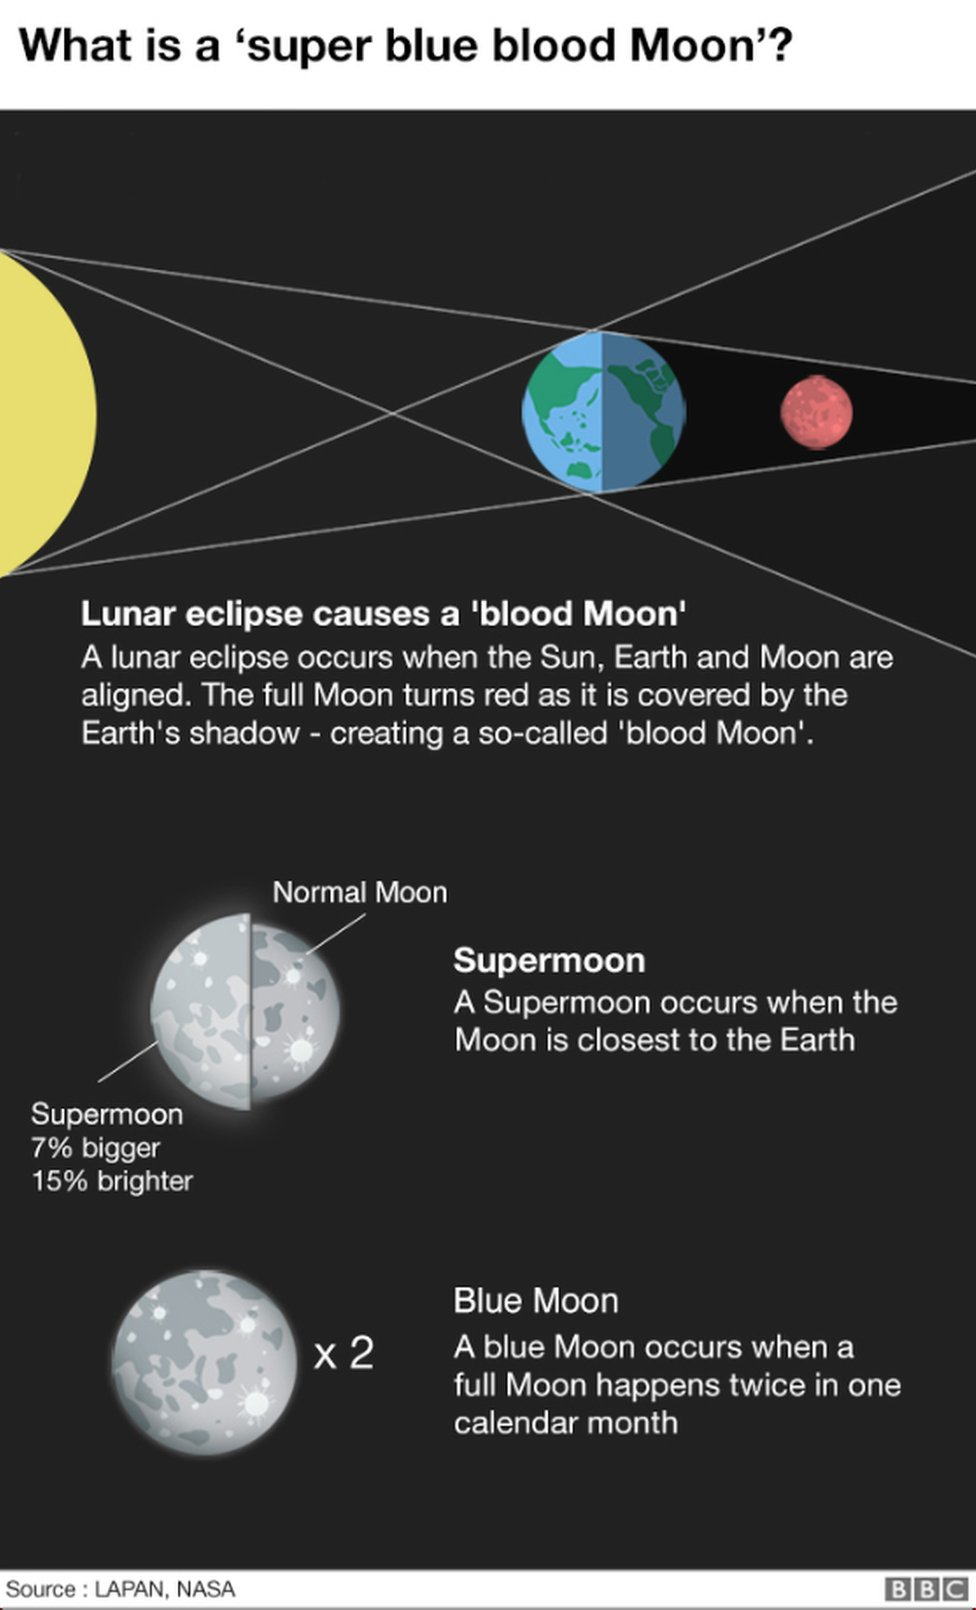 Graphic: what is a 'super blue blood Moon'?